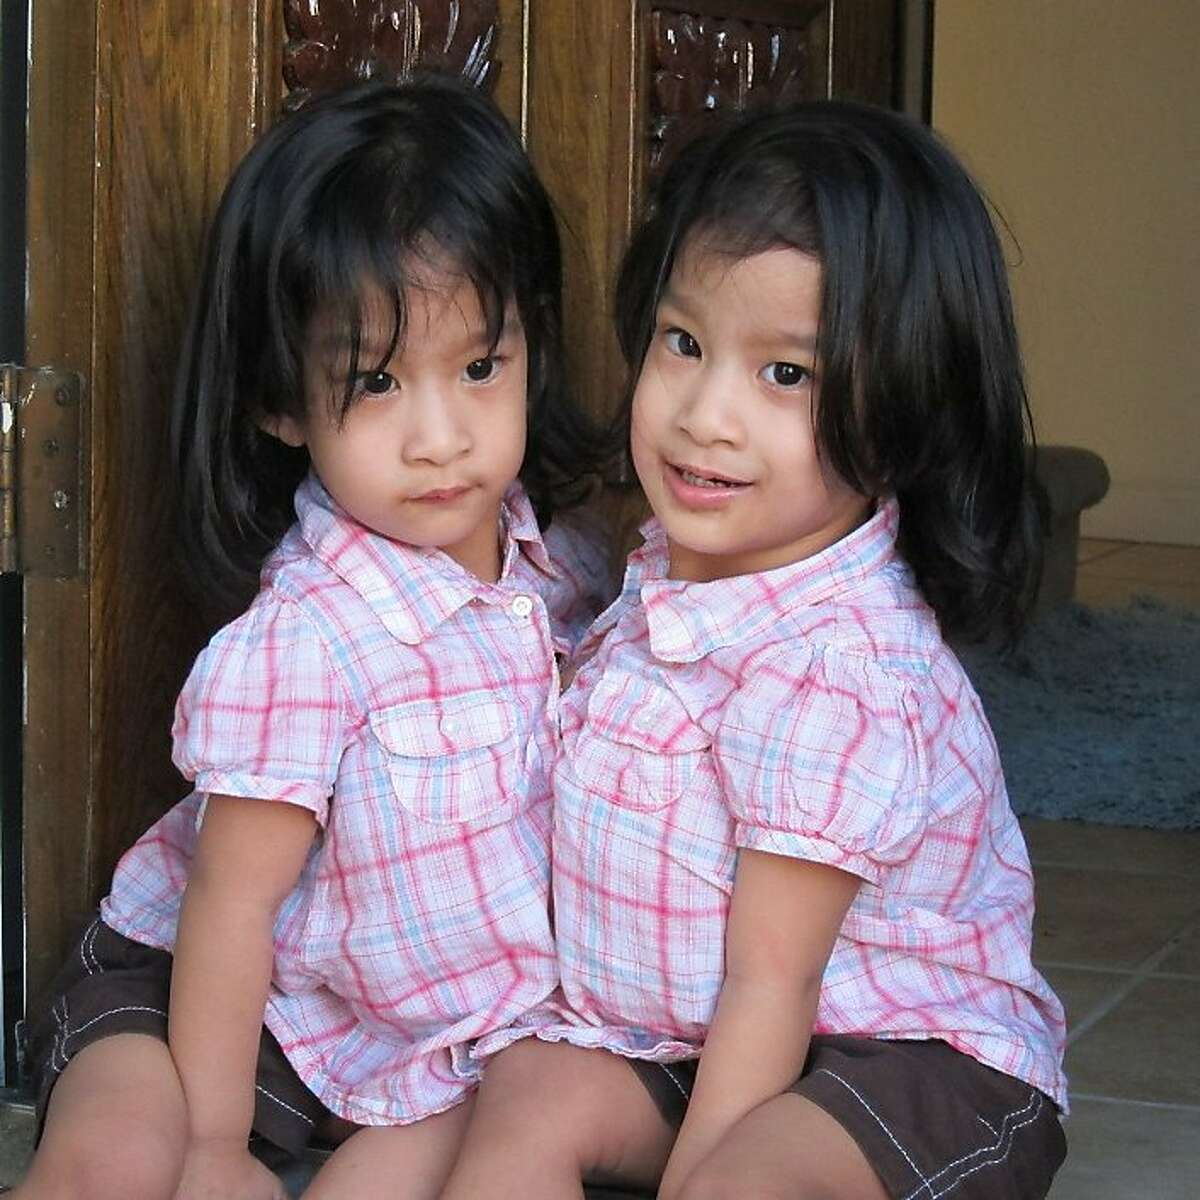 Angelina and Angelica Sabuco at home in San Jose, Calif. The cojoined twins are to be separated at Lucile Packard Hospital.